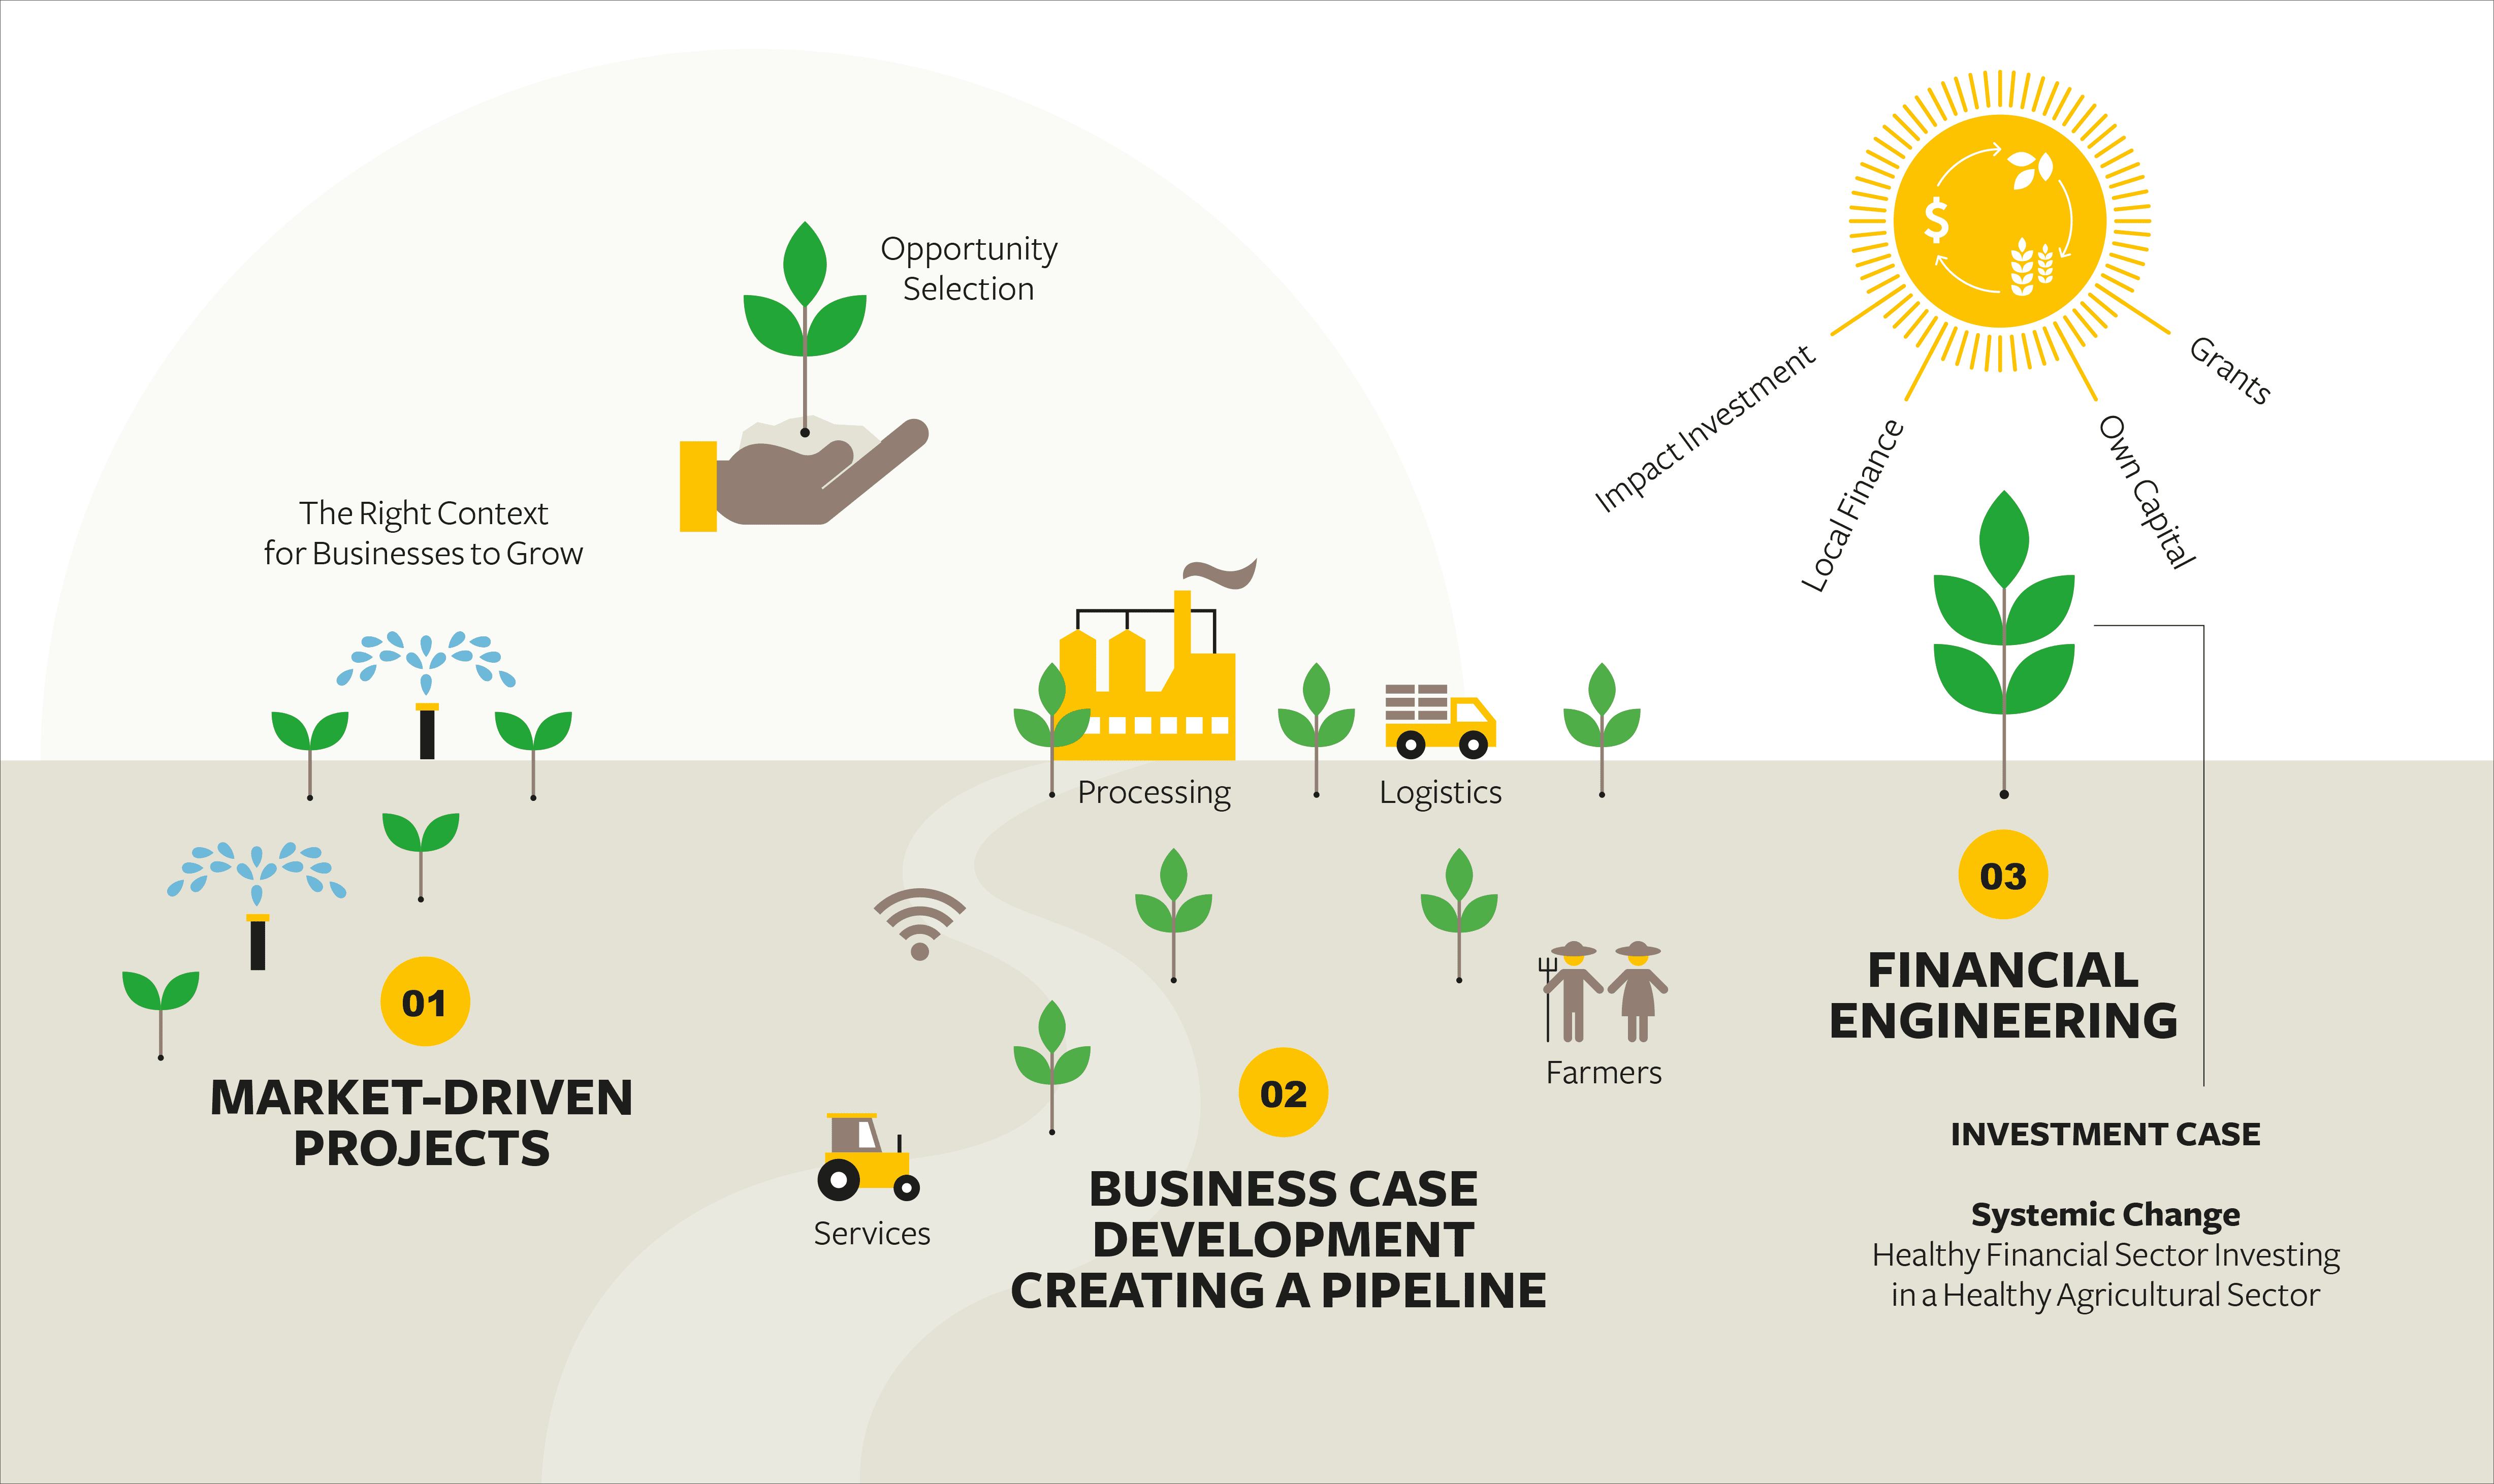 Solidaridad, positioning, papers, coffe, impact investment, infographic, farmers, green, leafs, sun, water, business case, financial, market-driven, projects